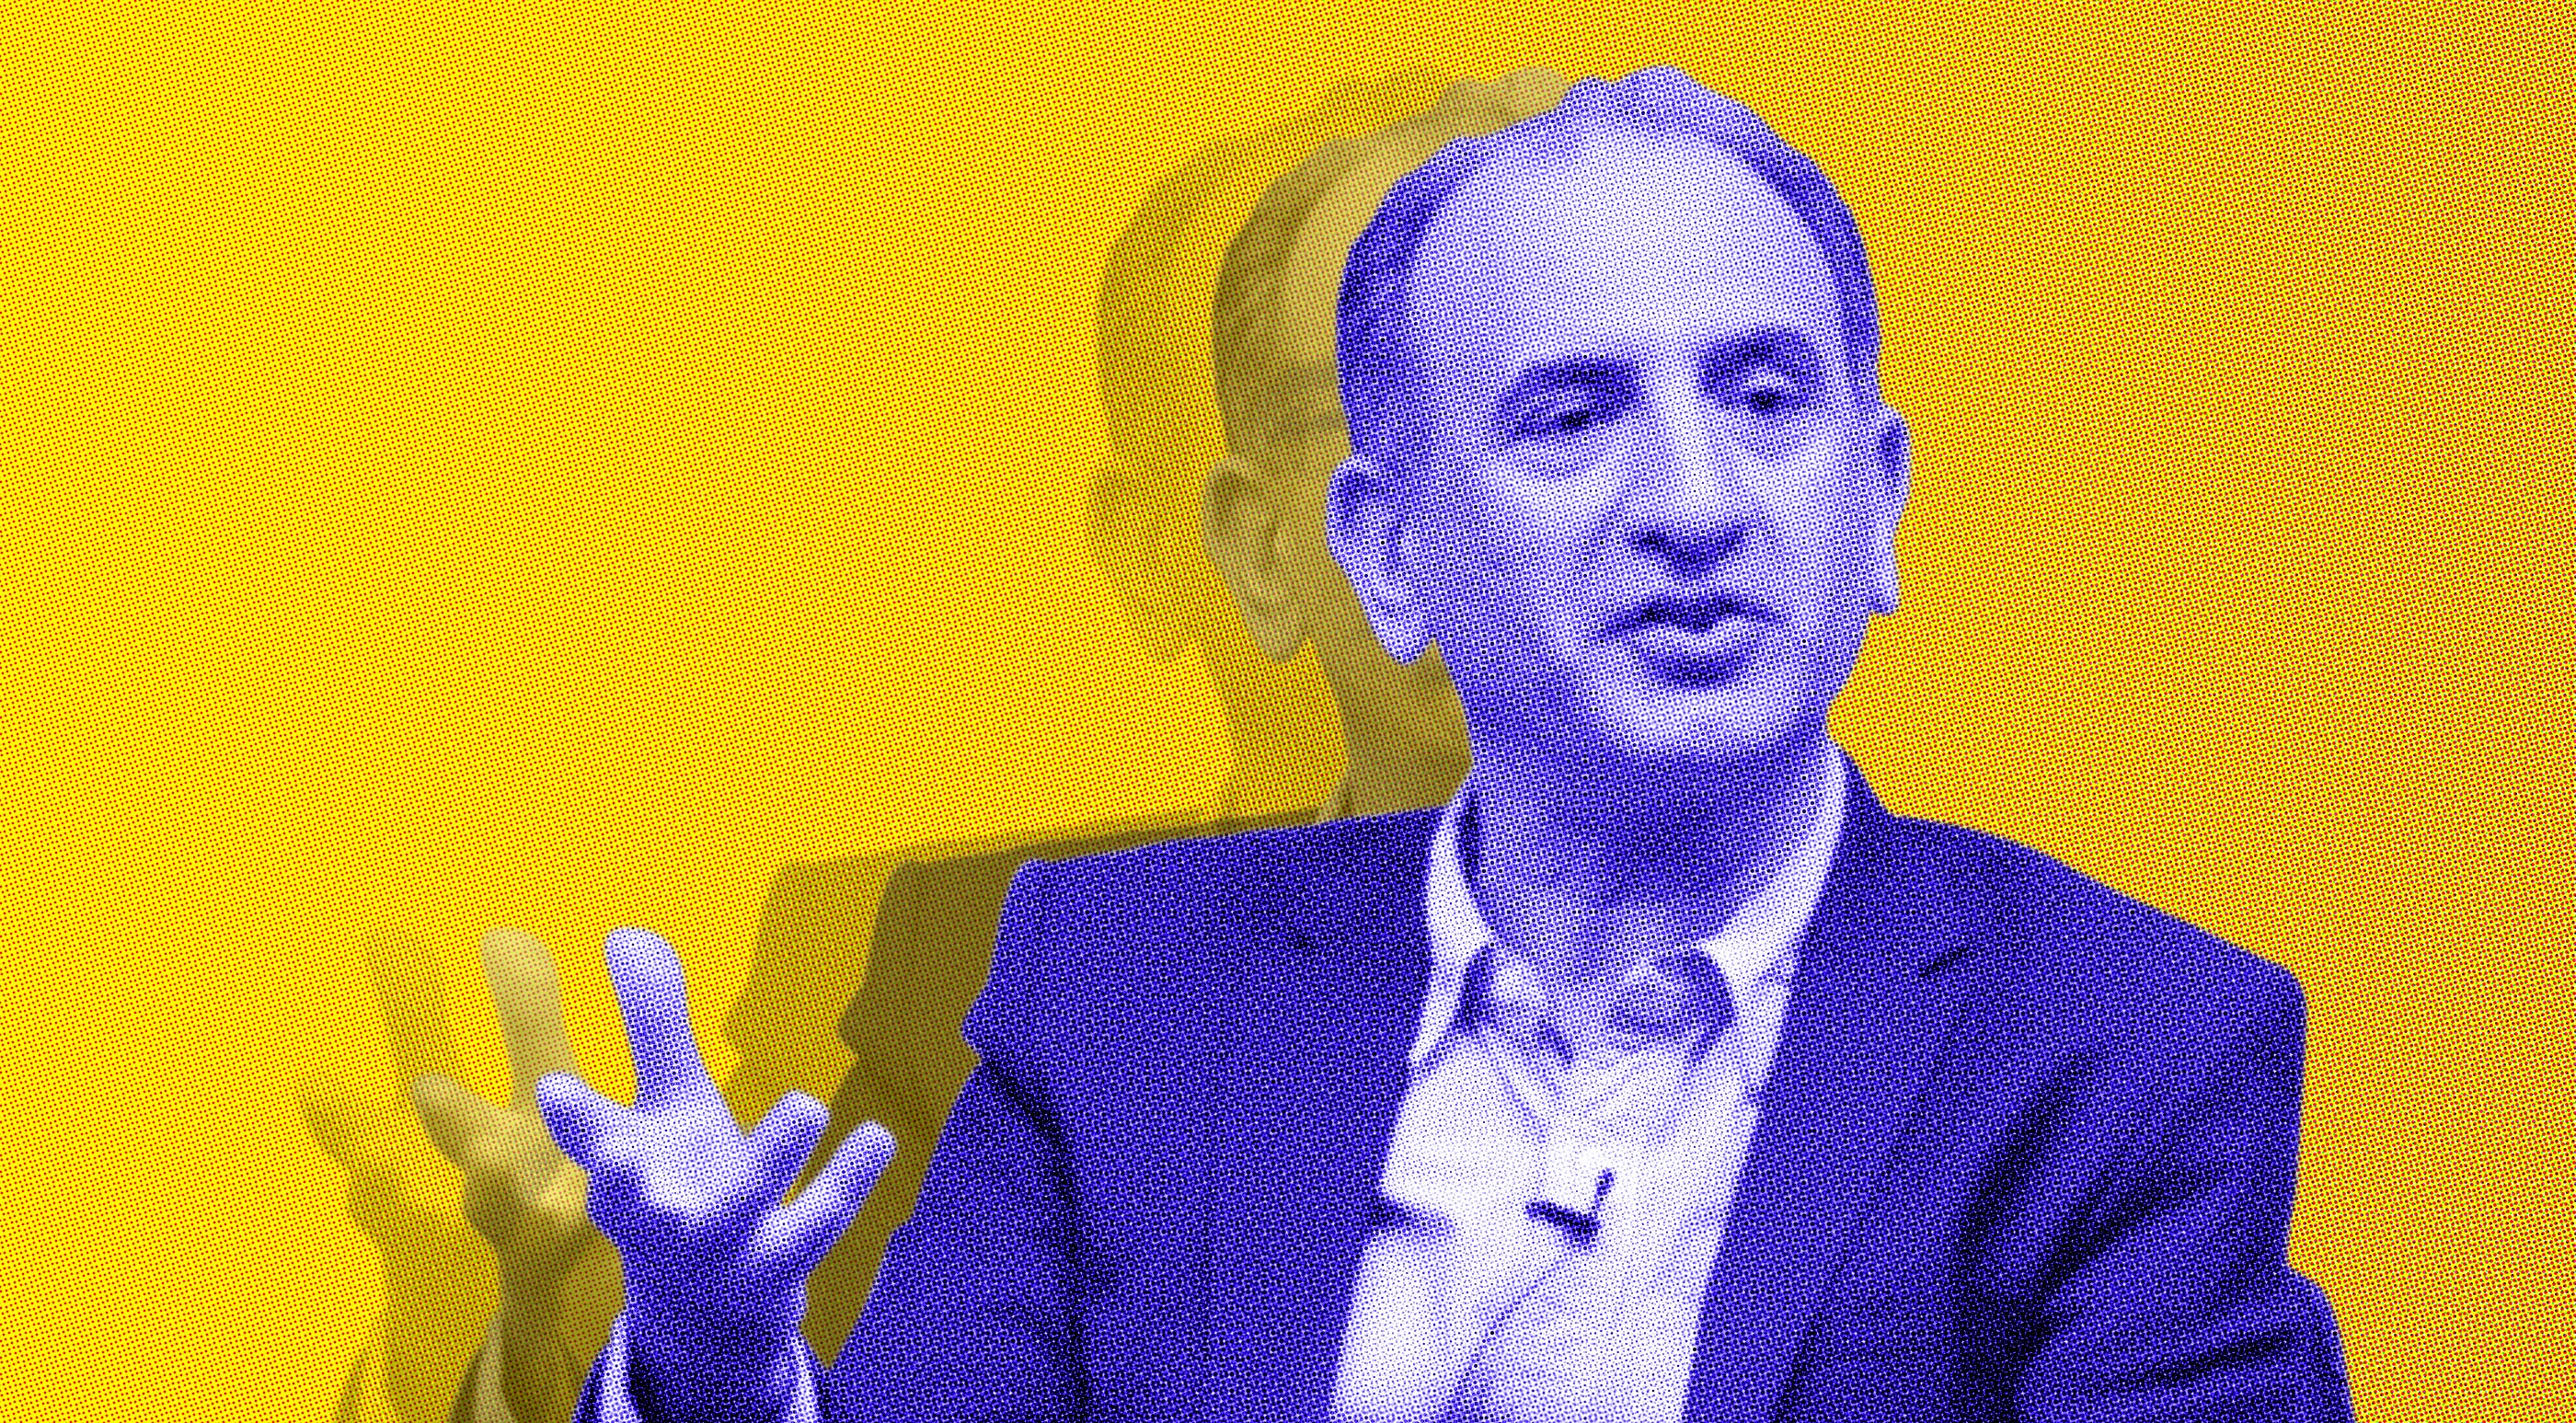 Illustration of Armando Iannucci, based on an original image CC-BY-2.0 Chatham House